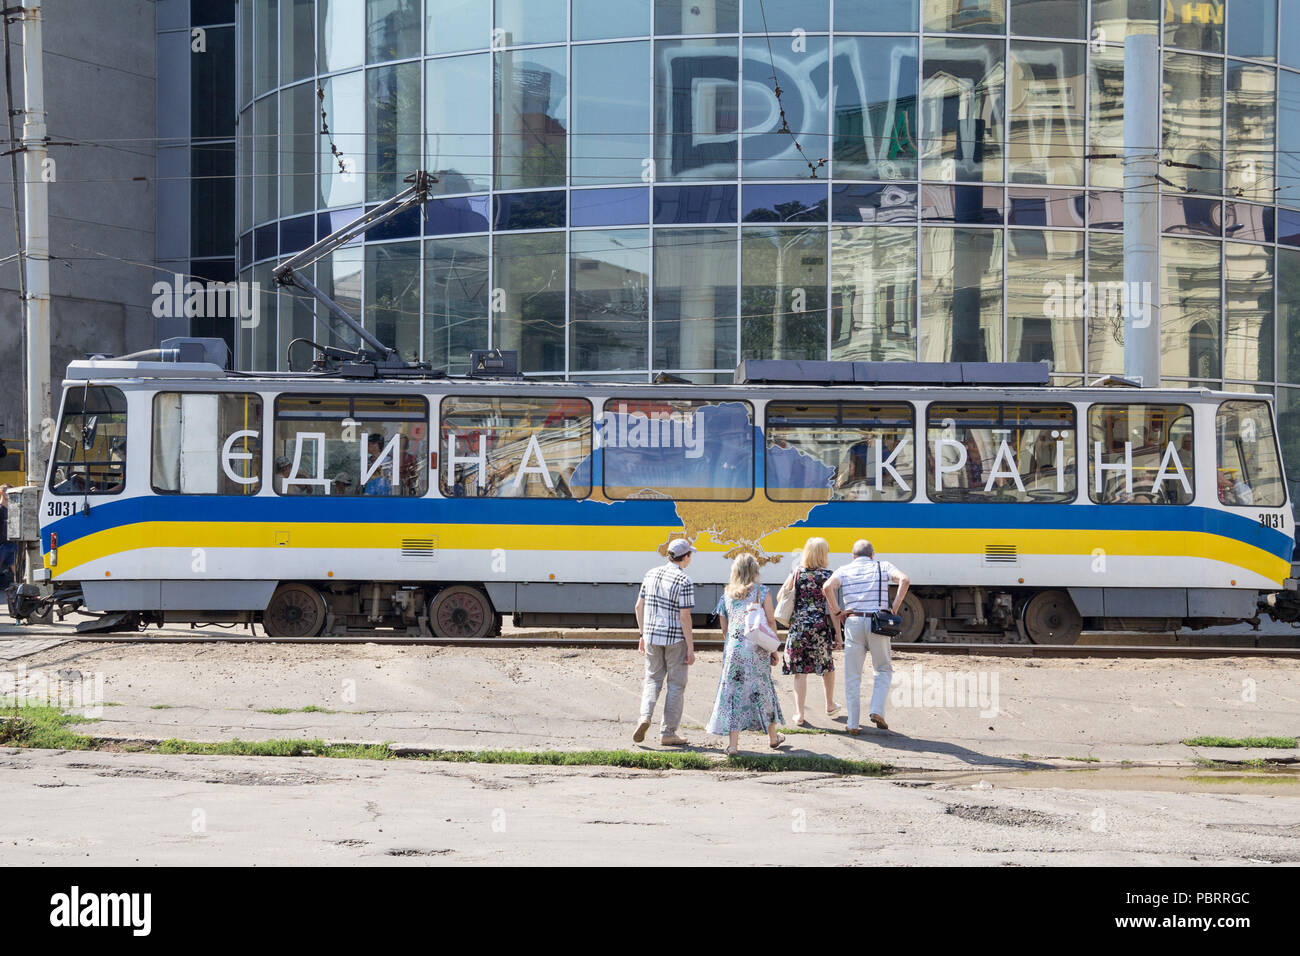 DNIPROPETROVSK, UKRAINE - AUGUST 15, 2018: Tram passing by the city center, with Ukrainian propaganda calling for unity with the slogan 'one country'  - Stock Image